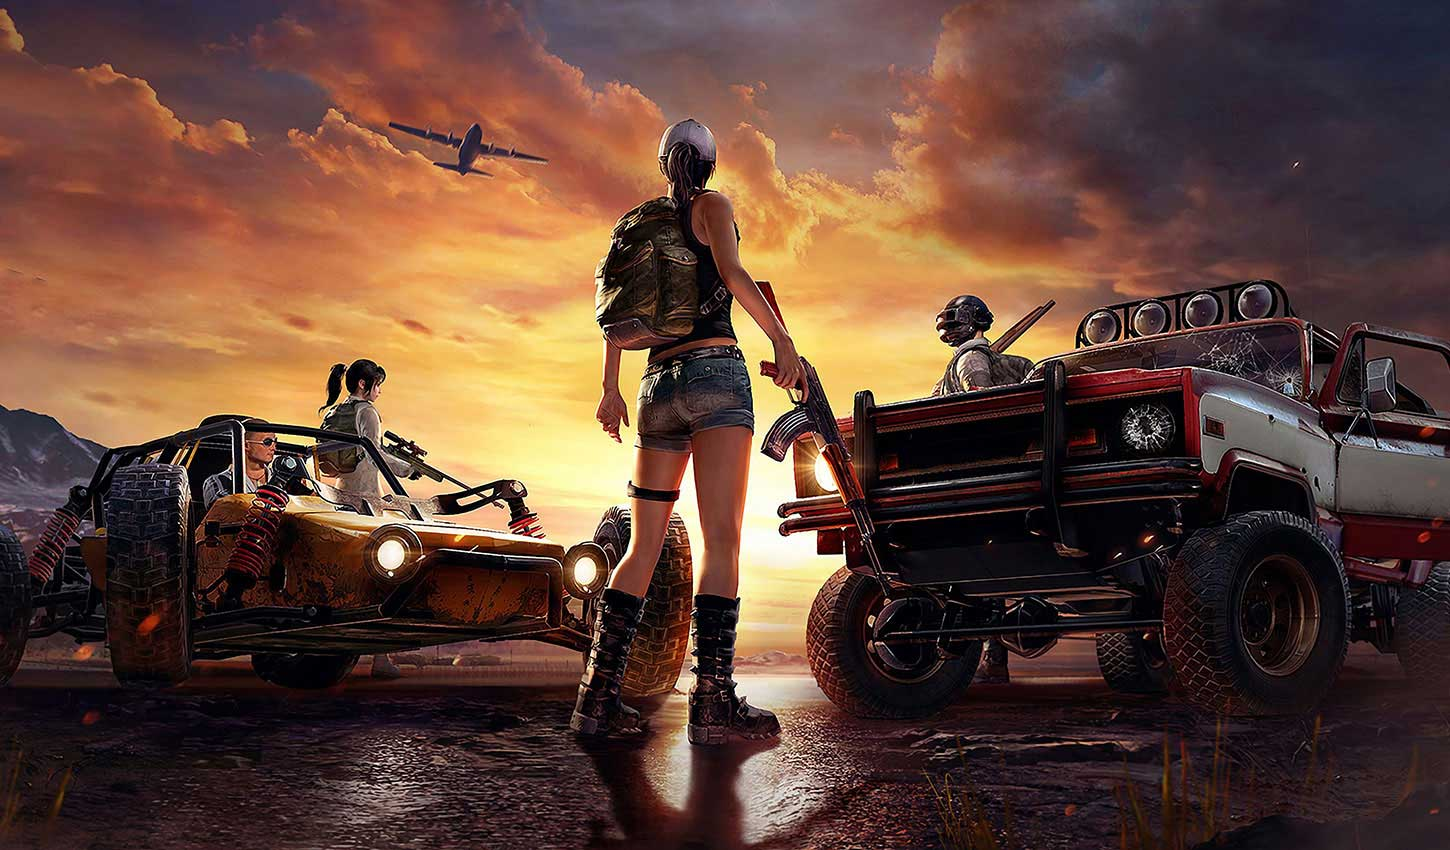 pubg mobile could be unban in india very soon